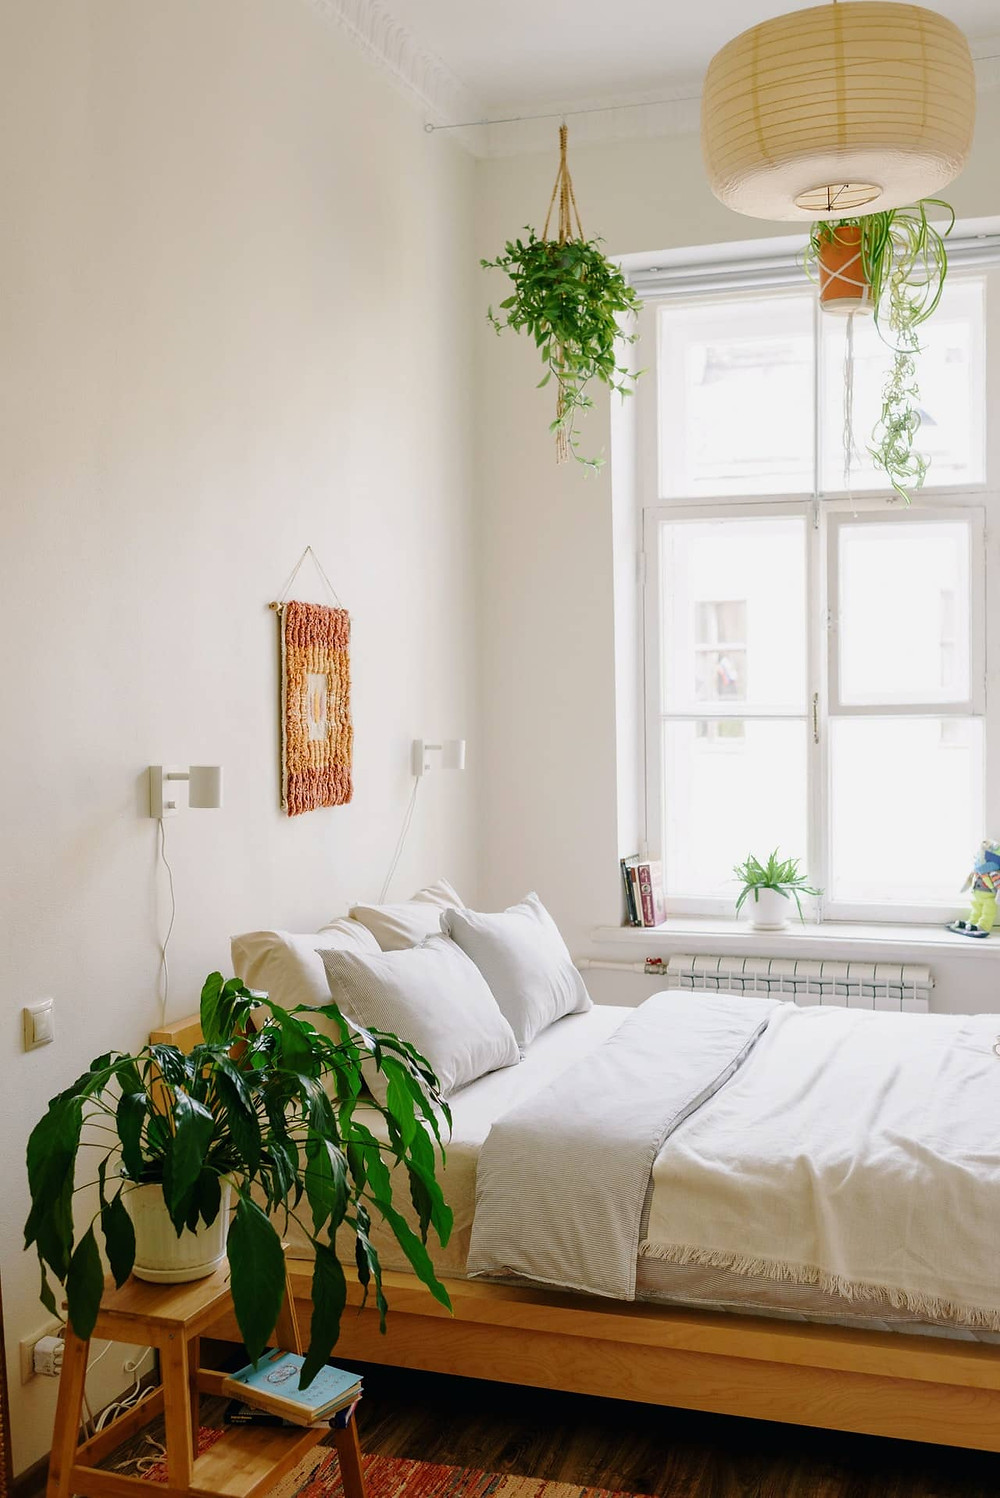 Best bedroom plants for producing oxygen, promoting relaxation and better sleep.